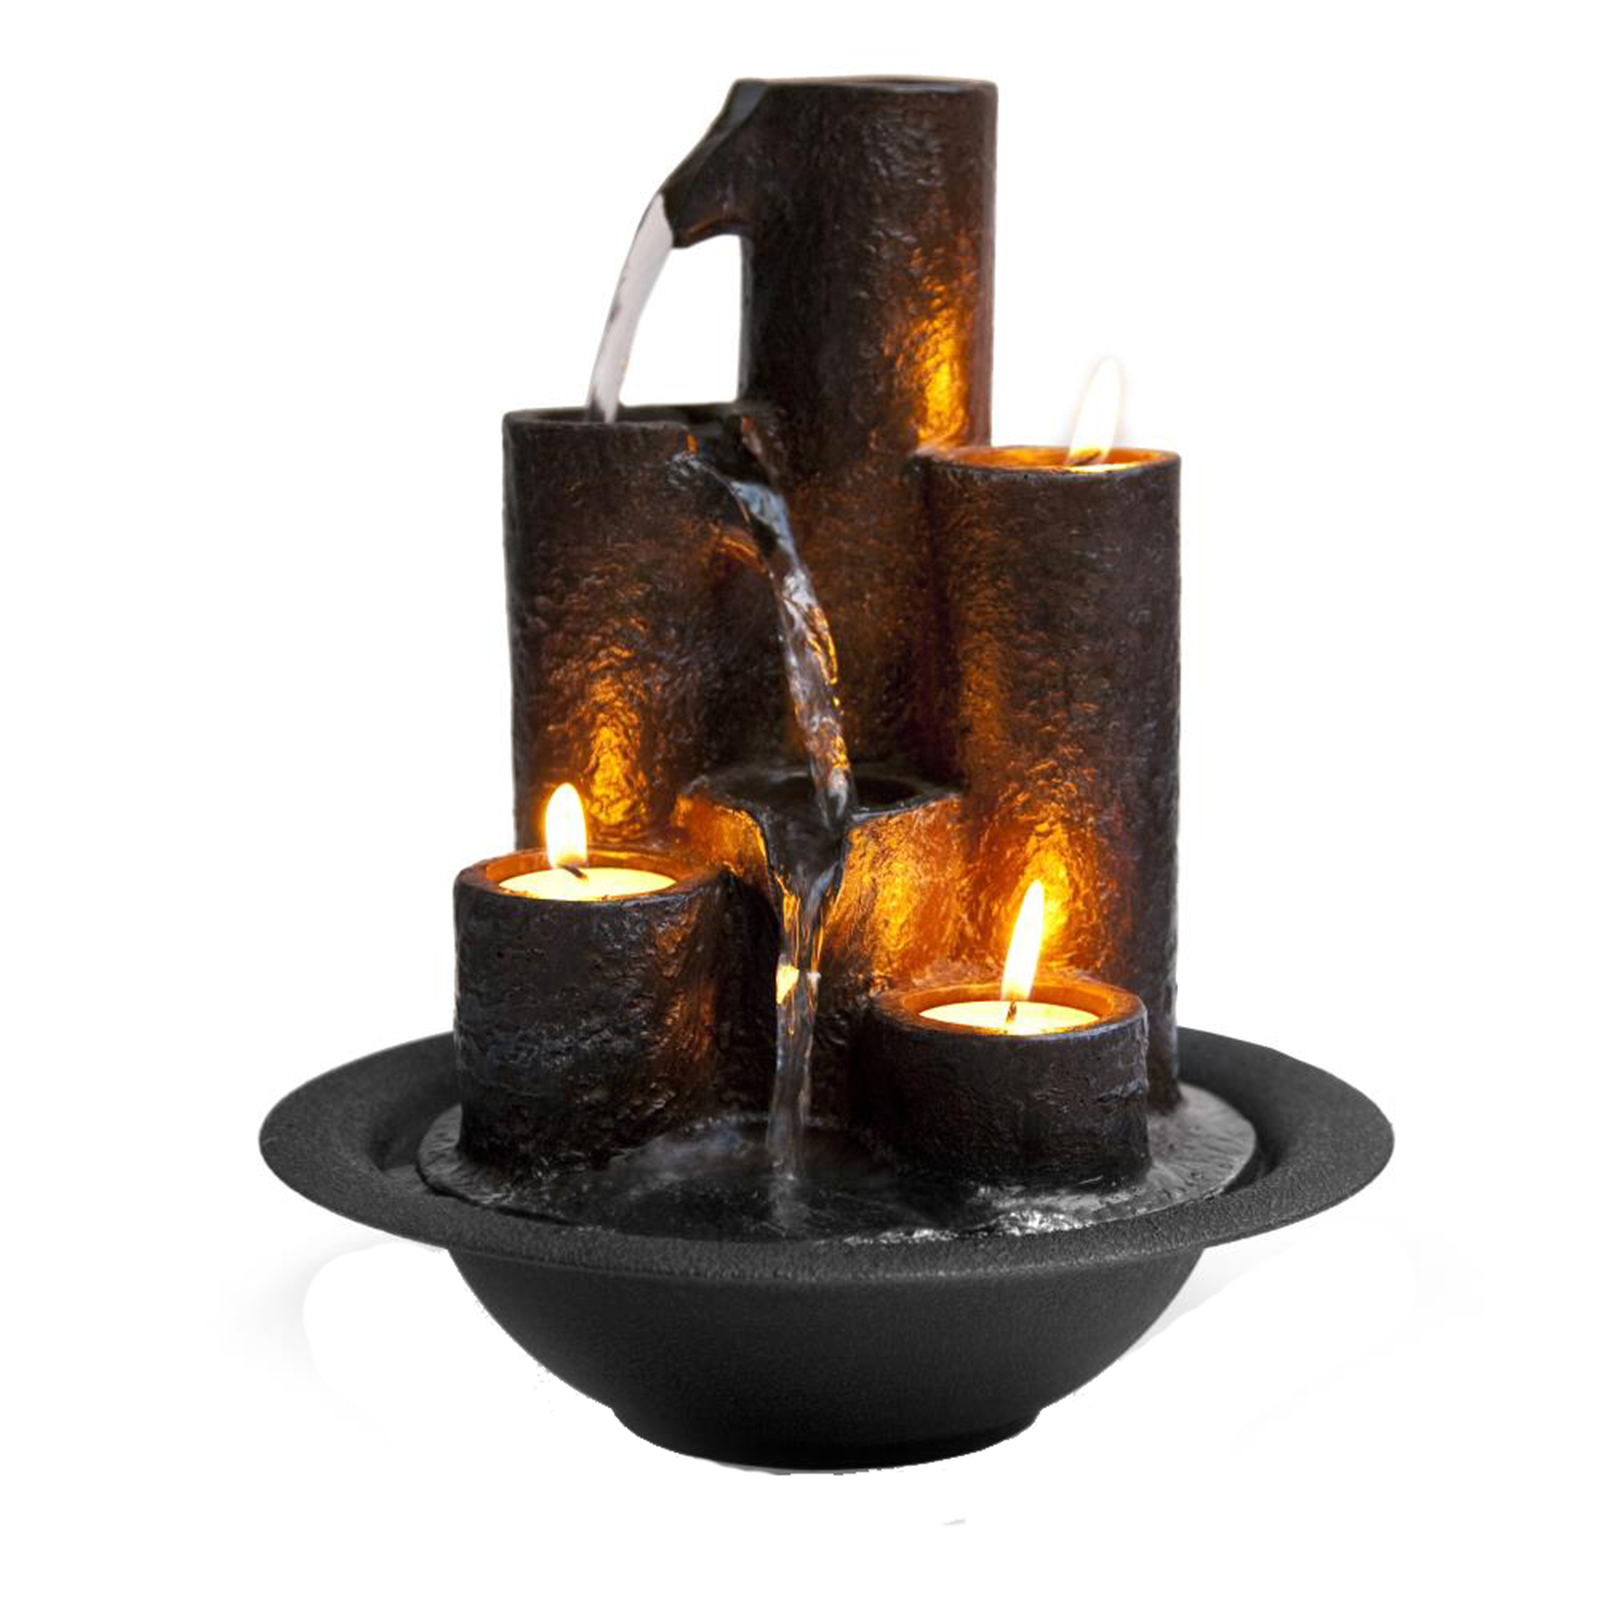 Water Fountain Relaxing Tabletop Water Feature Decoration by Serene Life